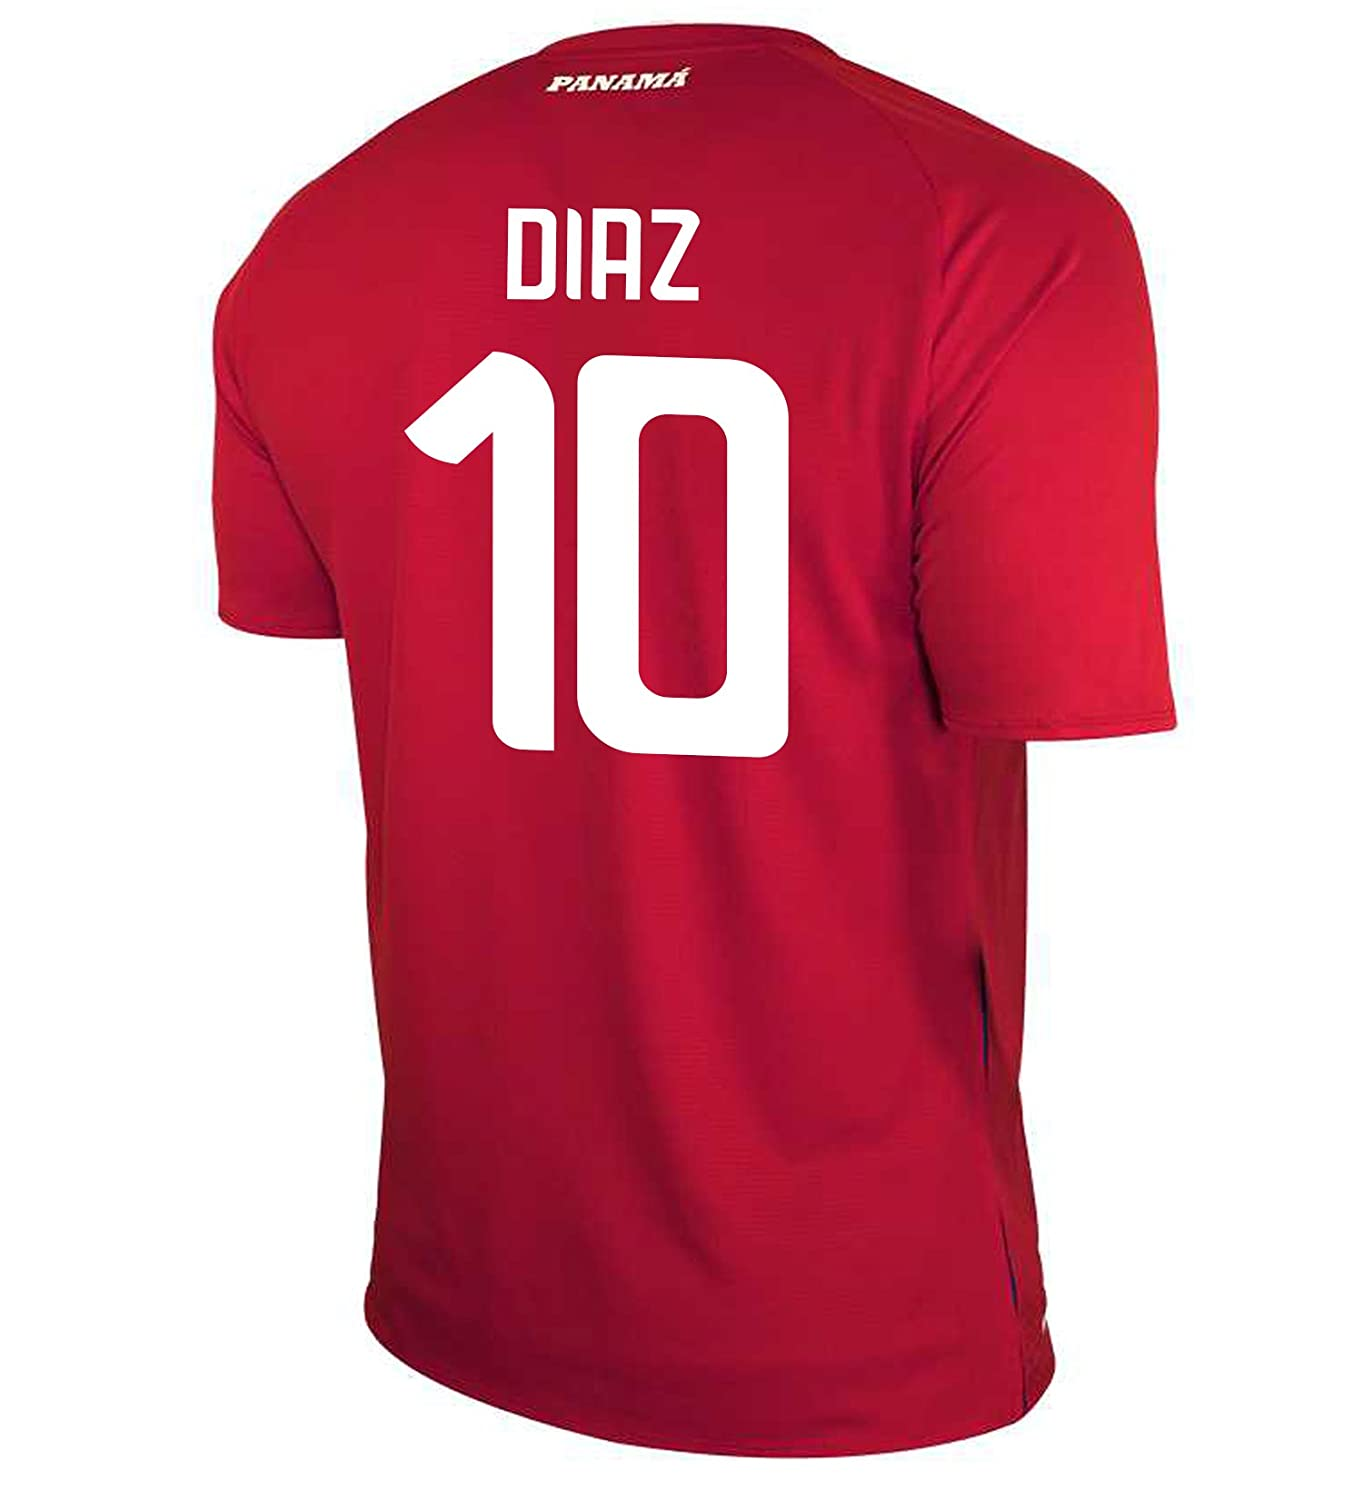 New Balance Men's DIAZ #10 Panama Home Soccer Jersey FIFA World Cup Russia 2018/サッカーユニフォーム パナマ ホーム用 ディアス #10 B07D3DD7QC US Small